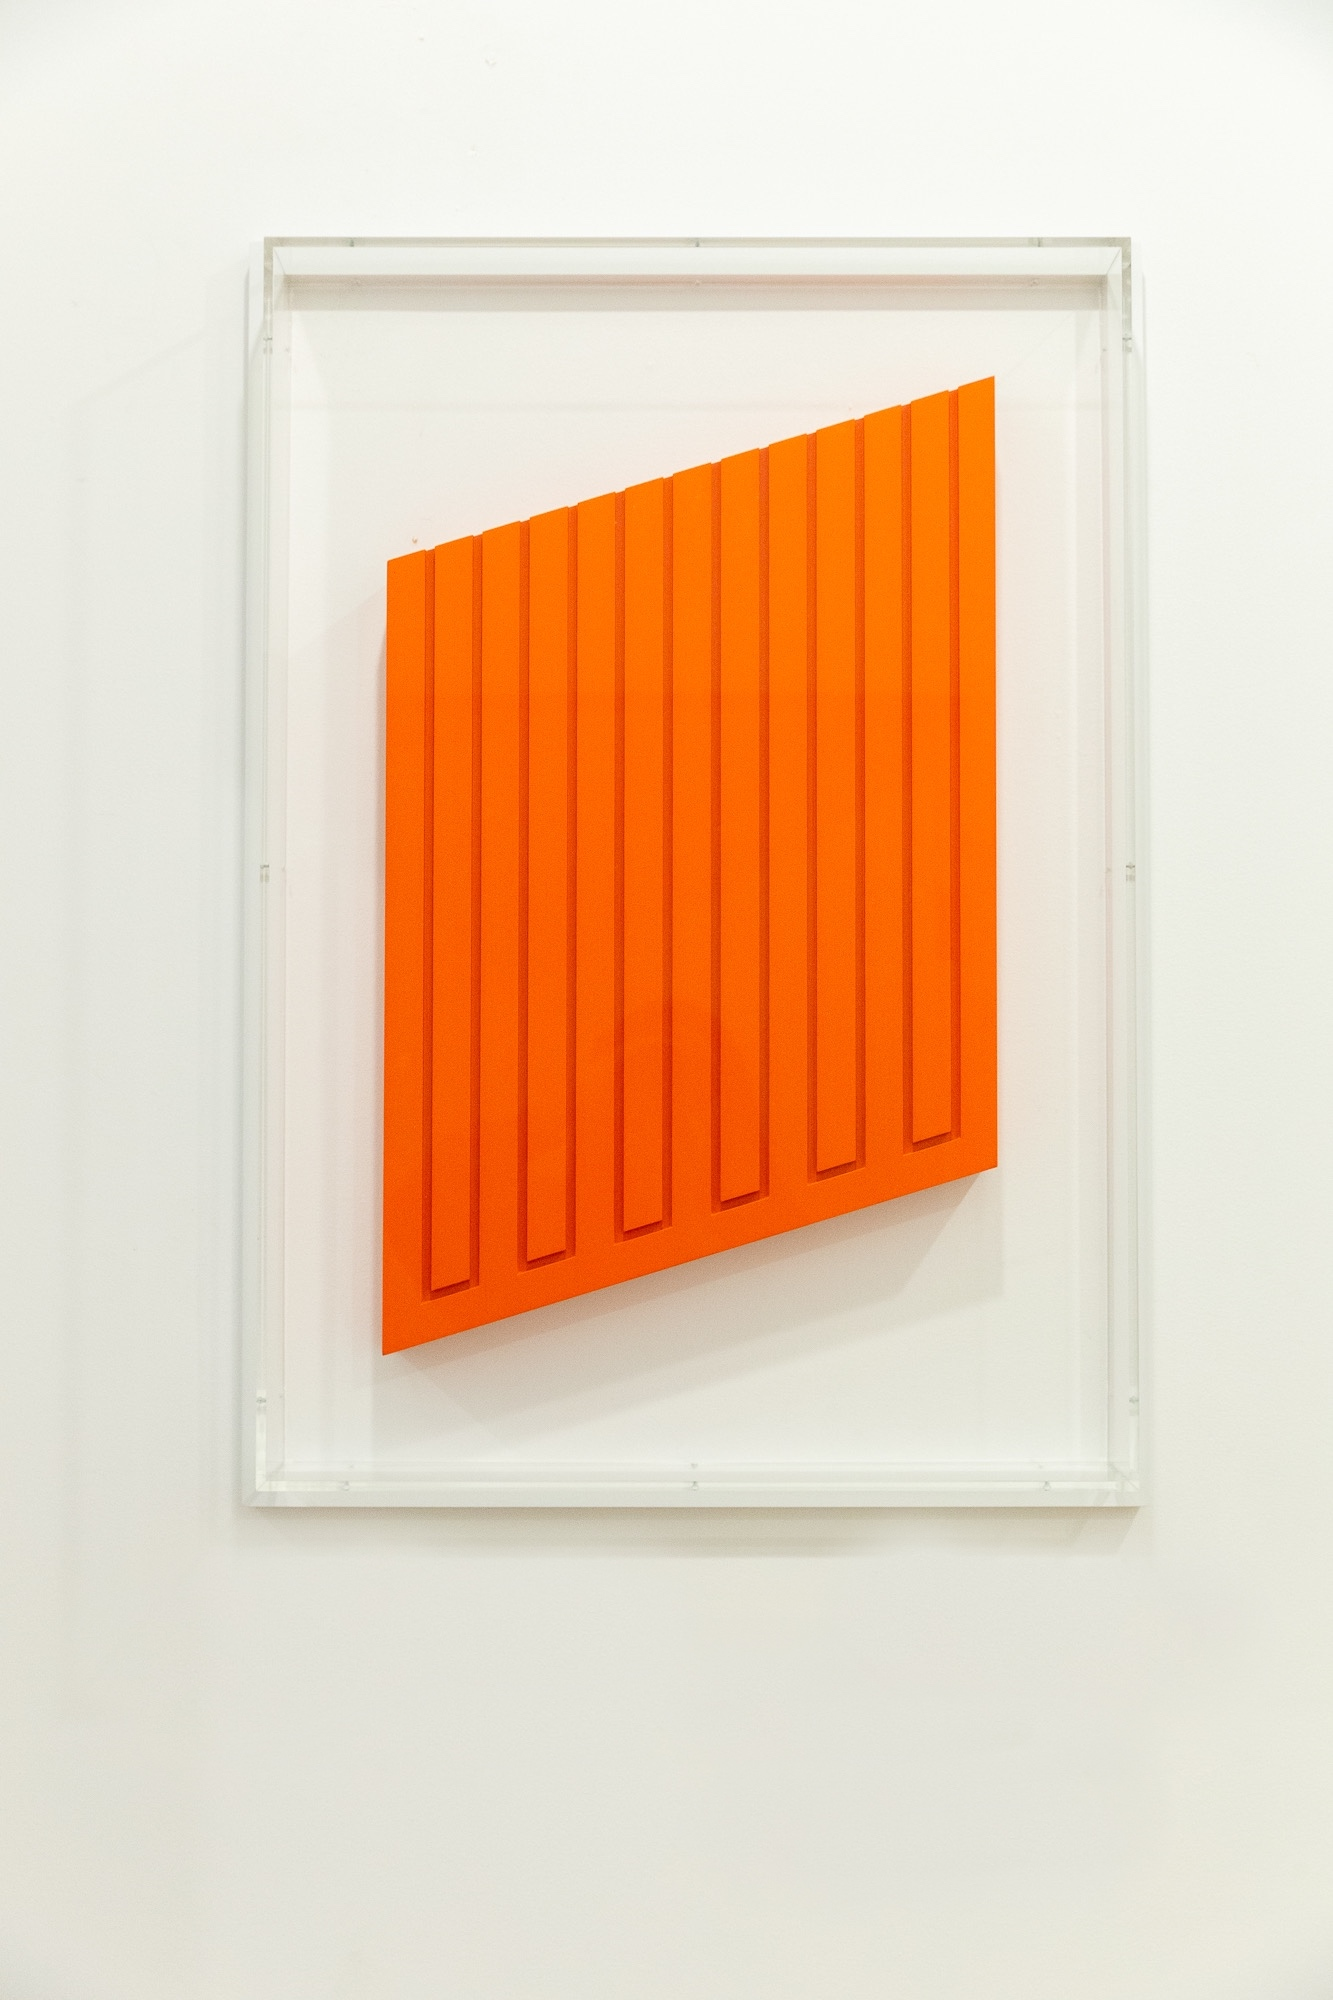 Donald Judd, Untitled, 1968-1976. Photo: Masha Maltsava. Courtesy of George Merck.